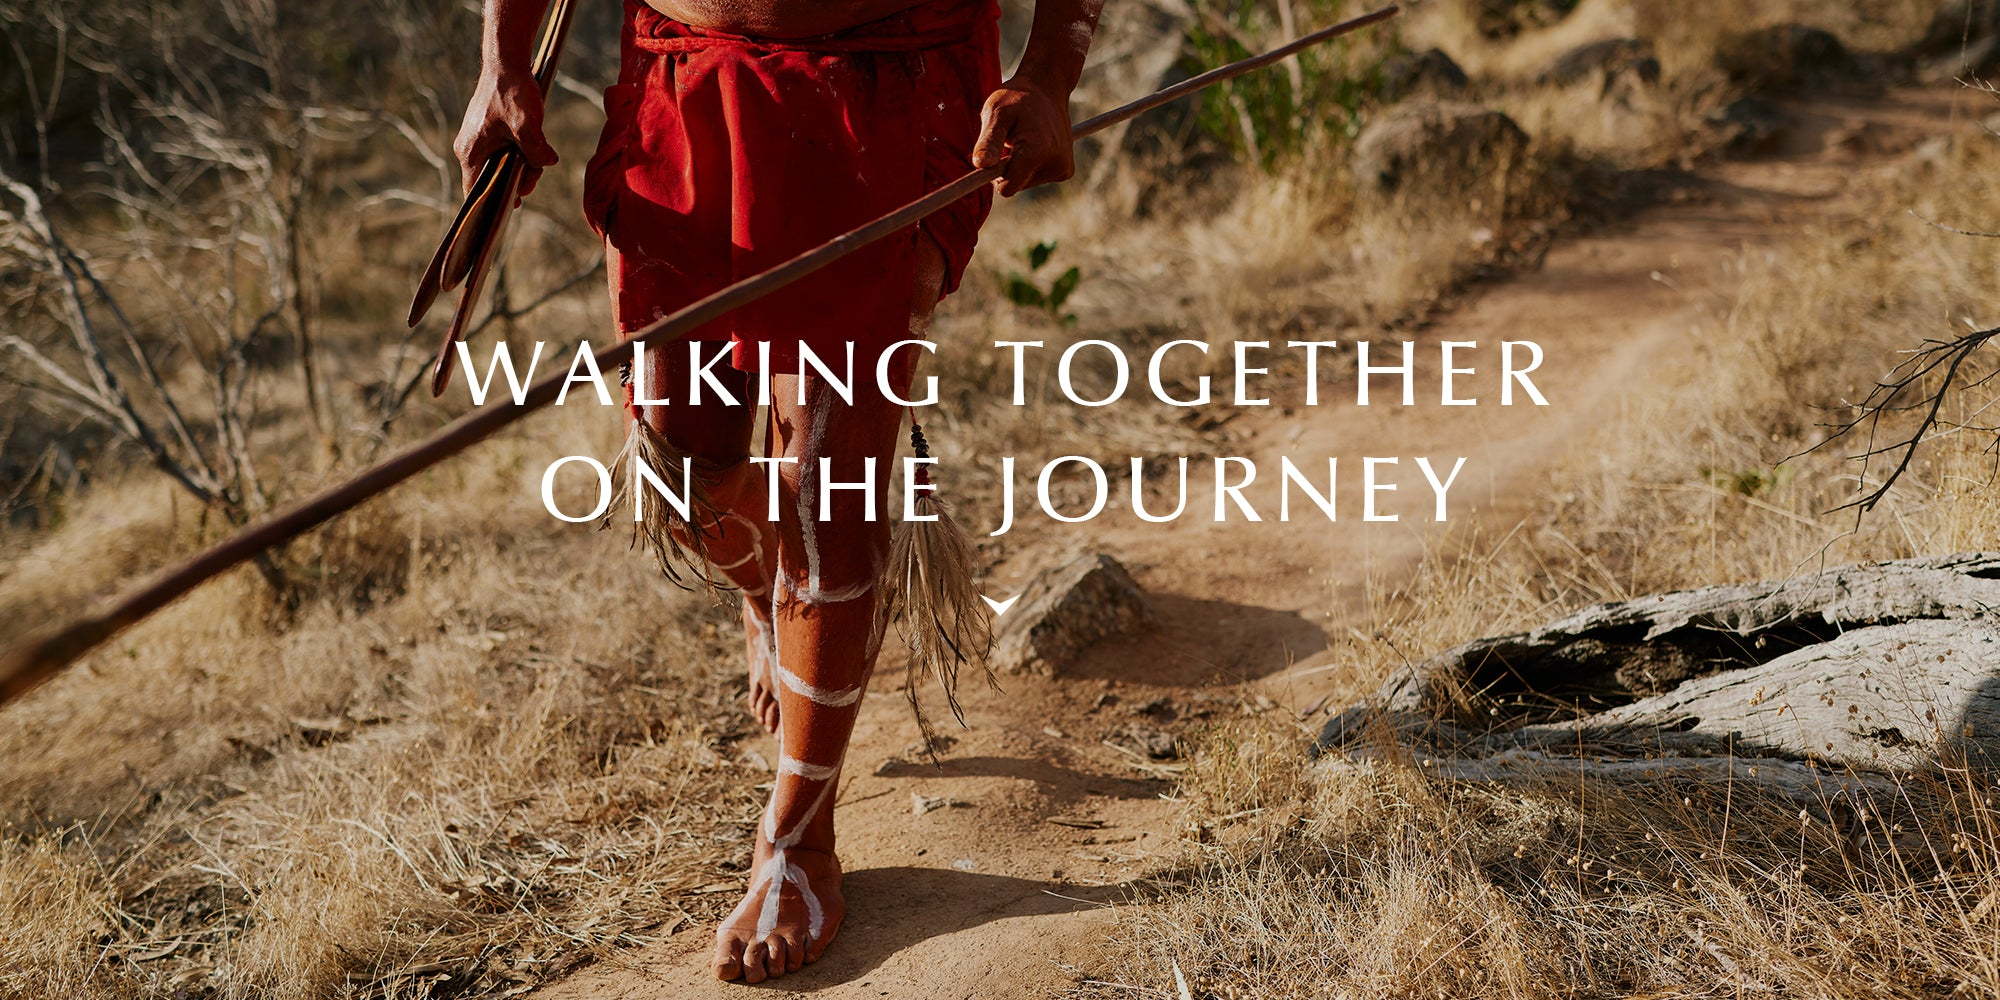 Walking Together on the Journey